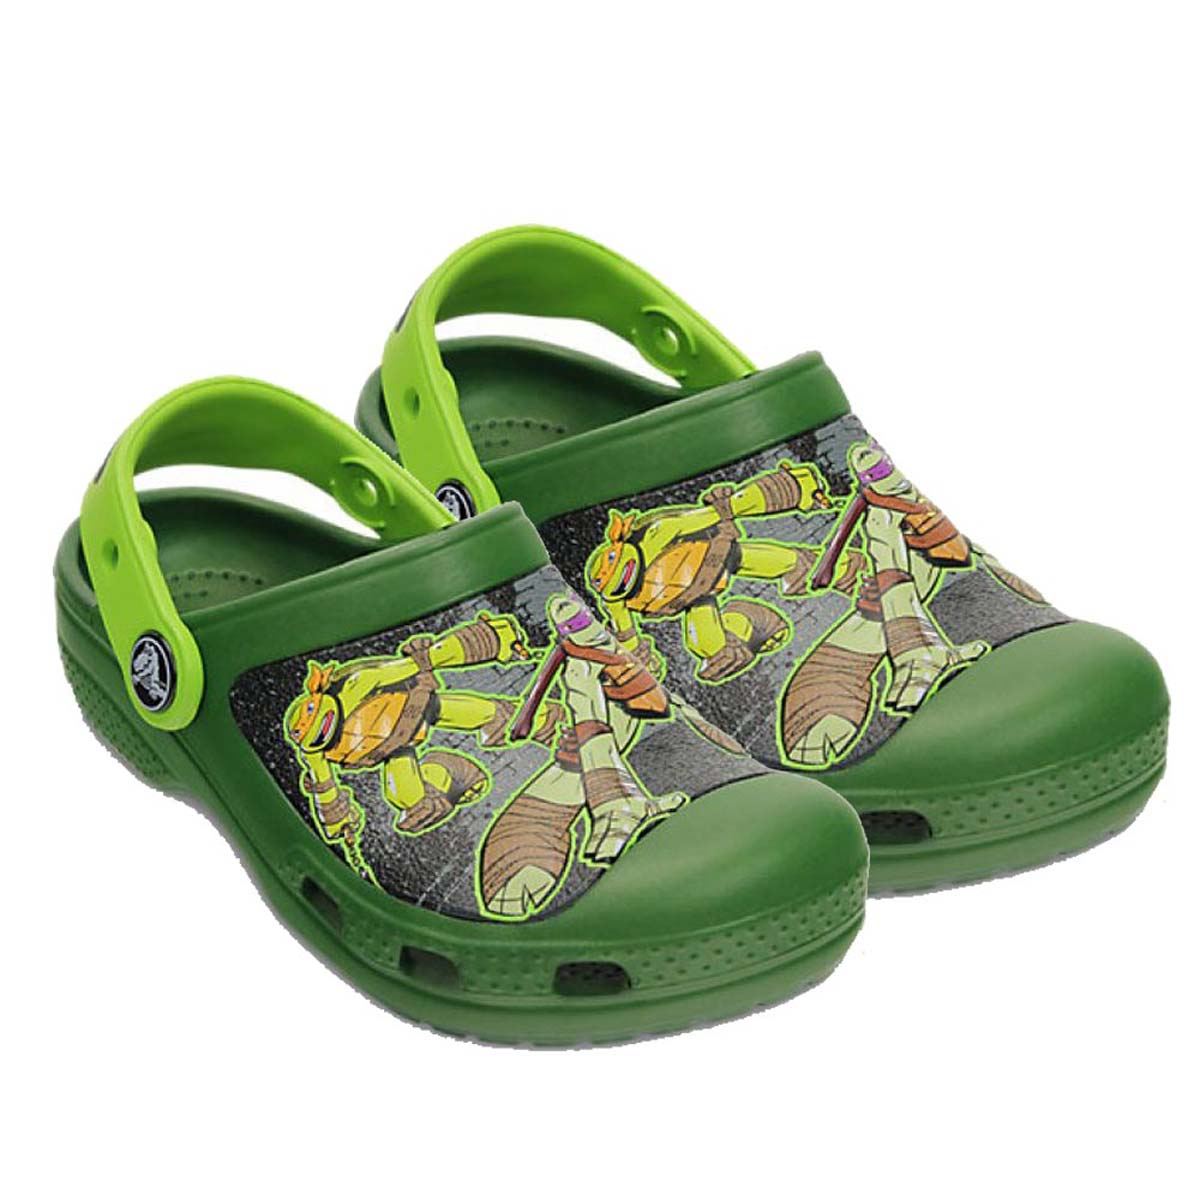 fb0477cf41d914 Crocs CC TMNT Kids Clog (Sea Volt Green)